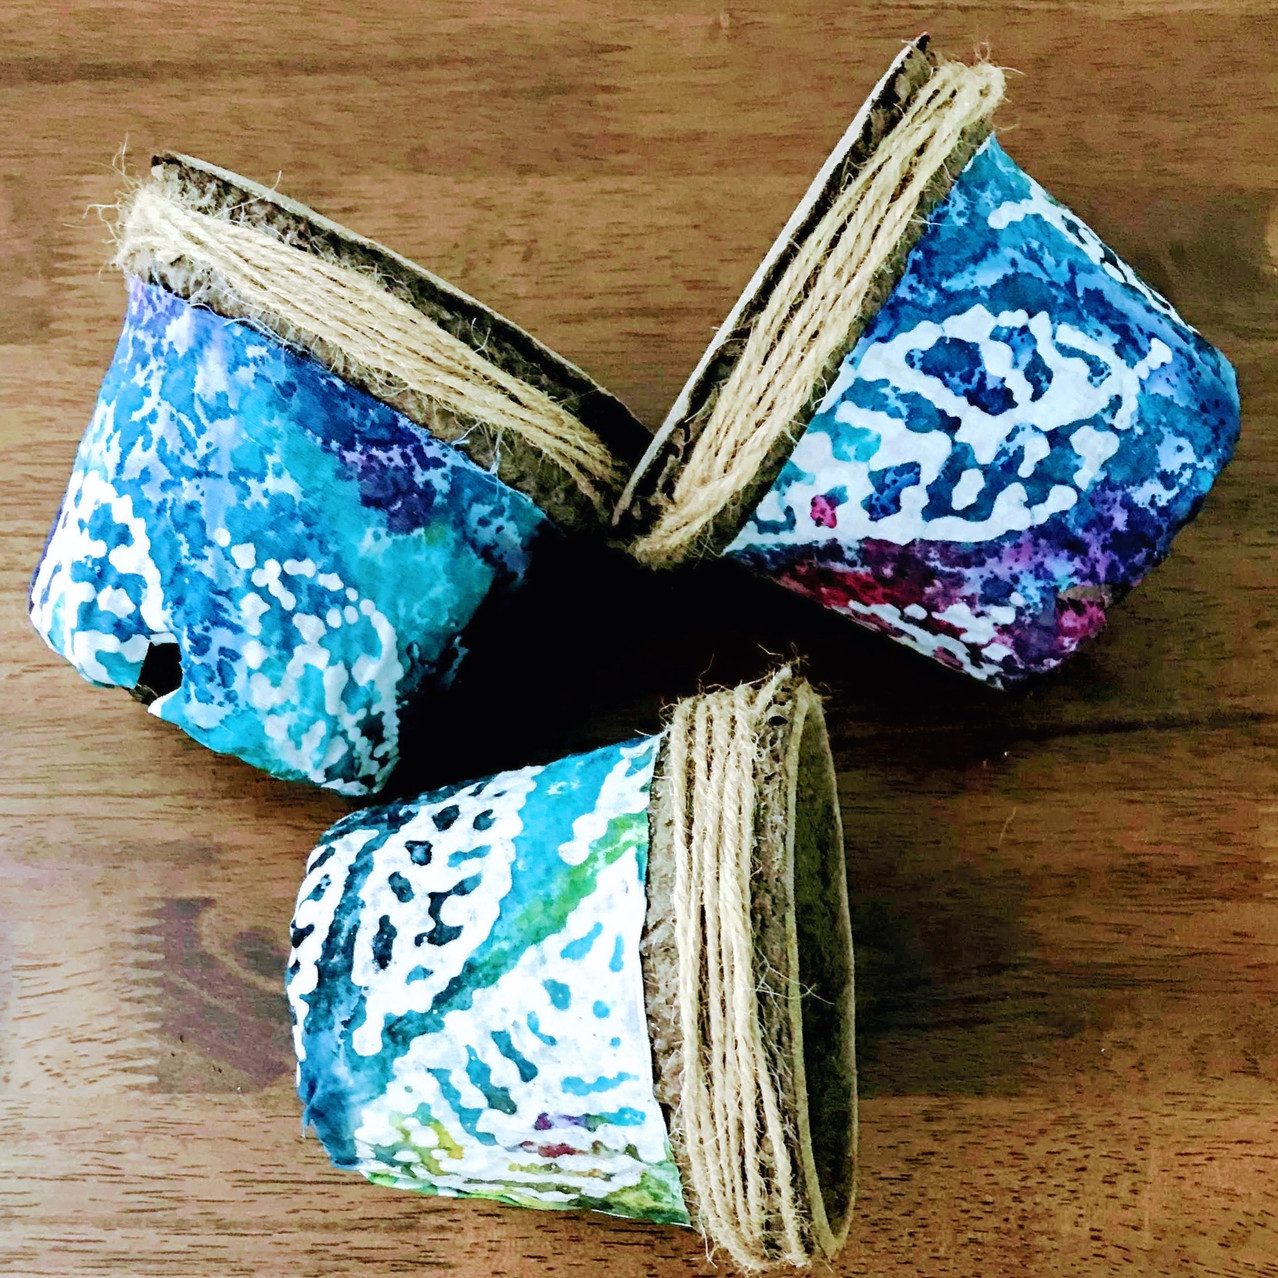 Photo of four inch plant pots covered in decorative fabric with colorful leaf pattern. Click link to visit shop and purchase pots or other eco-friendly gardening supplies.